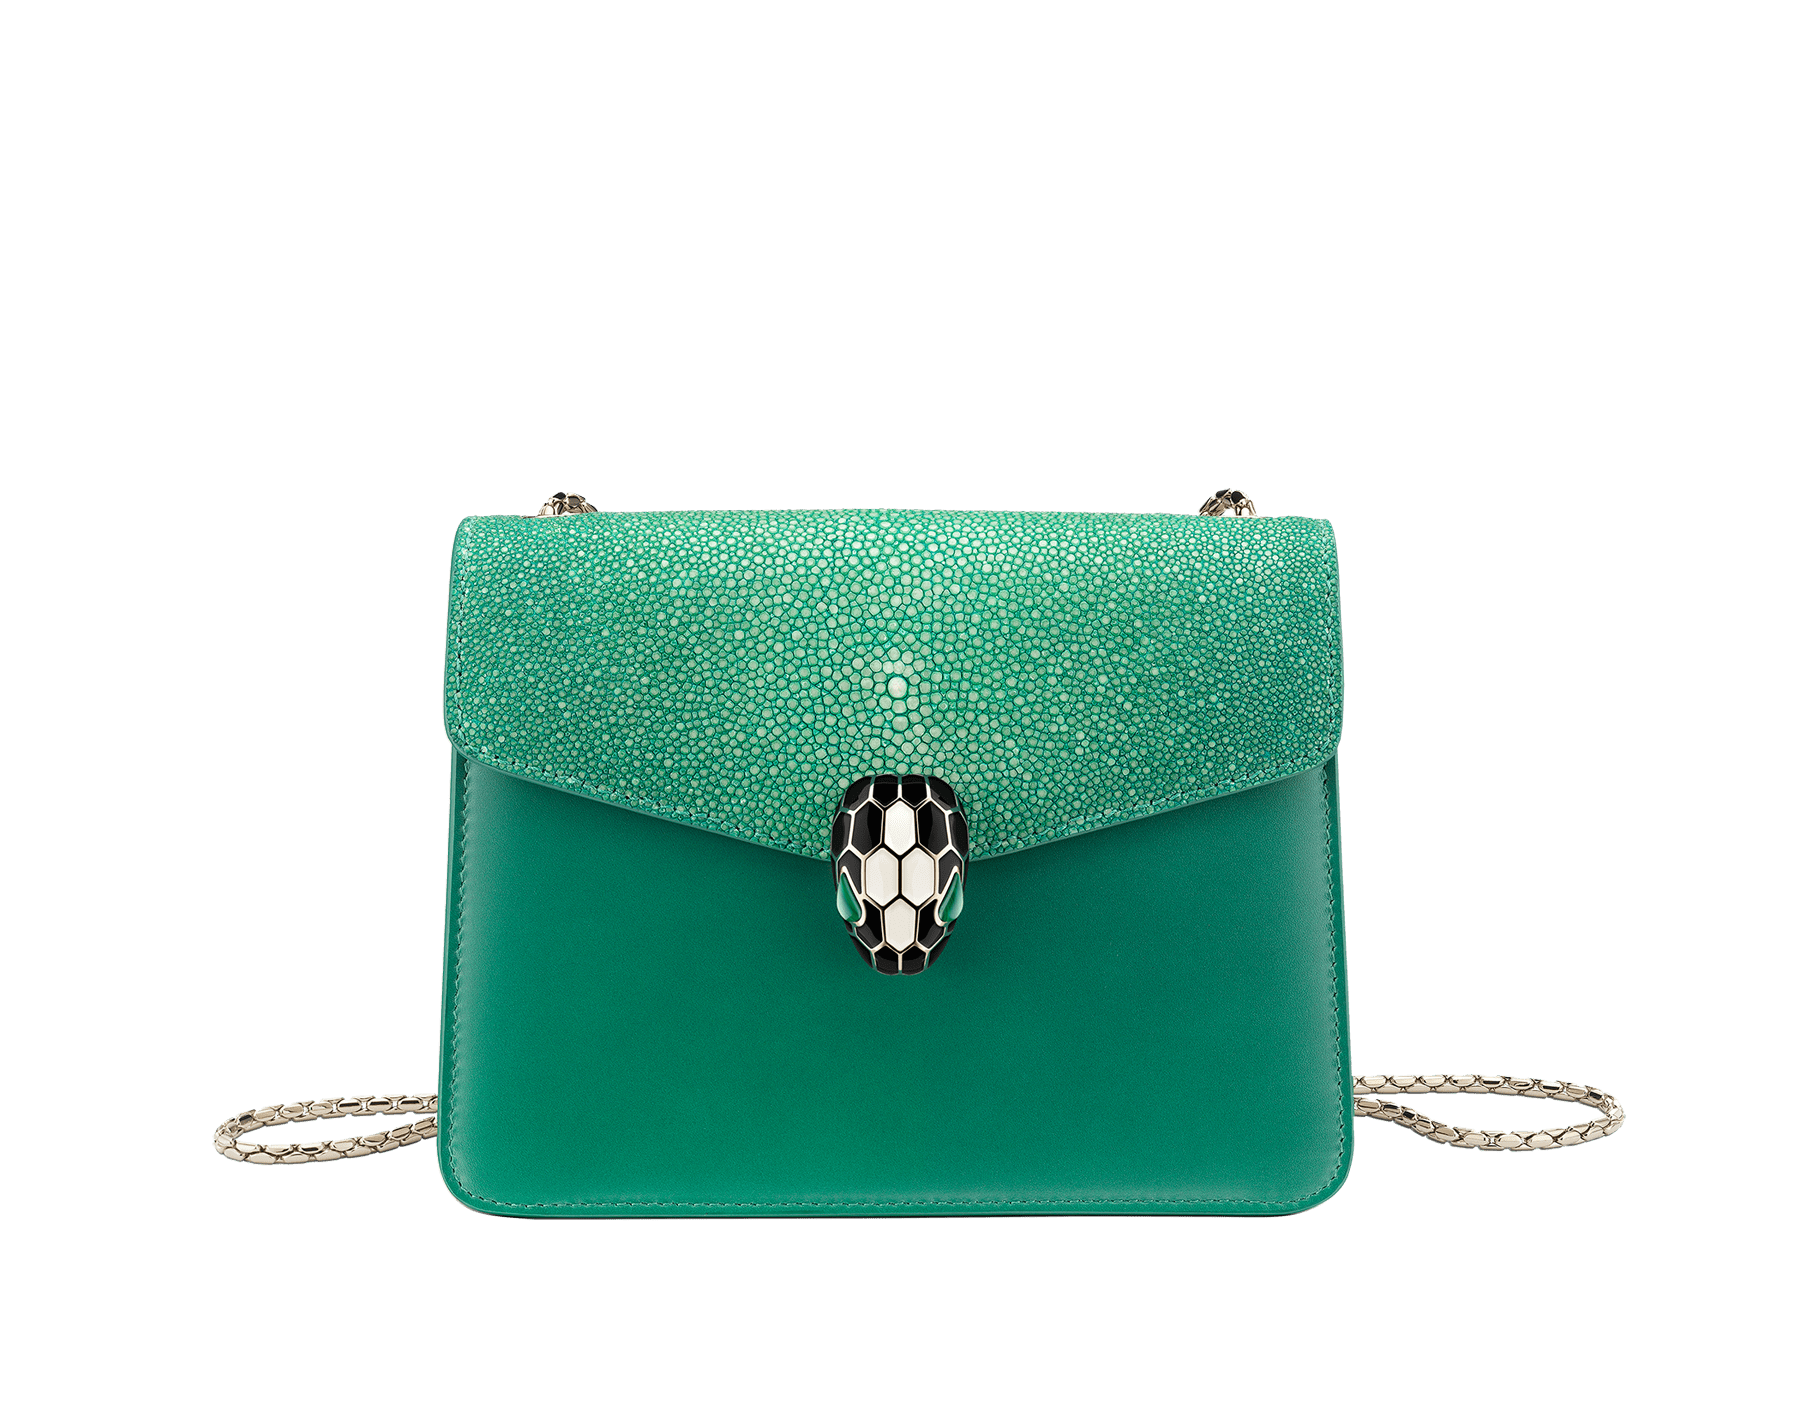 """Serpenti Forever "" crossbody bag in carmine jasper galuchat skin and calf leather. Iconic snakehead closure in light gold plated brass enriched with black and white enamel and green malachite eyes 422-Ga image 1"